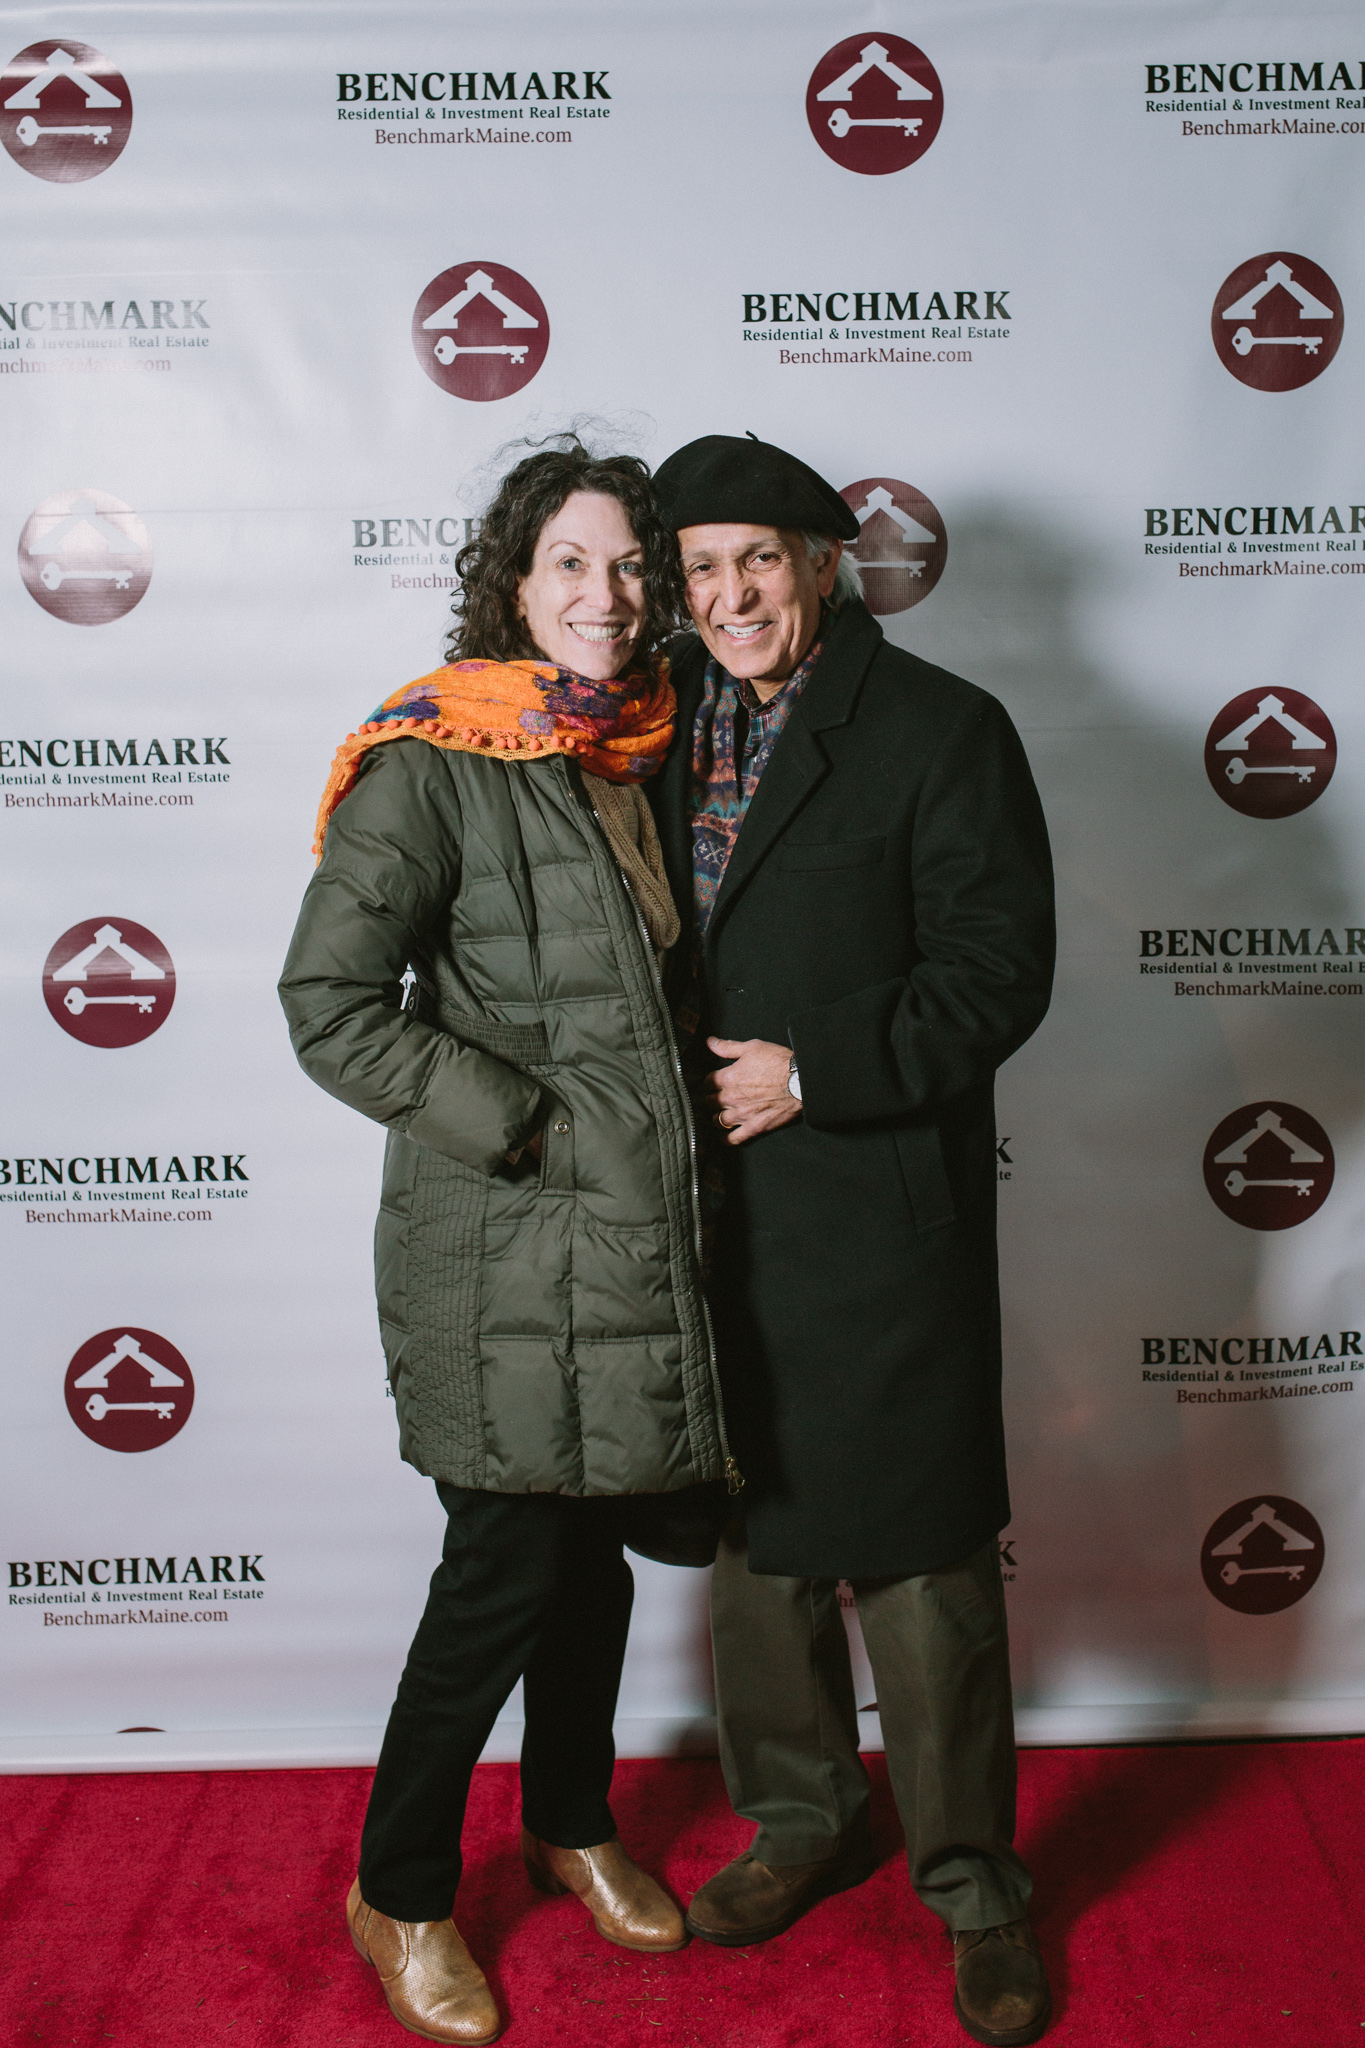 Benchmark_Holiday_Party_SR-008.jpg